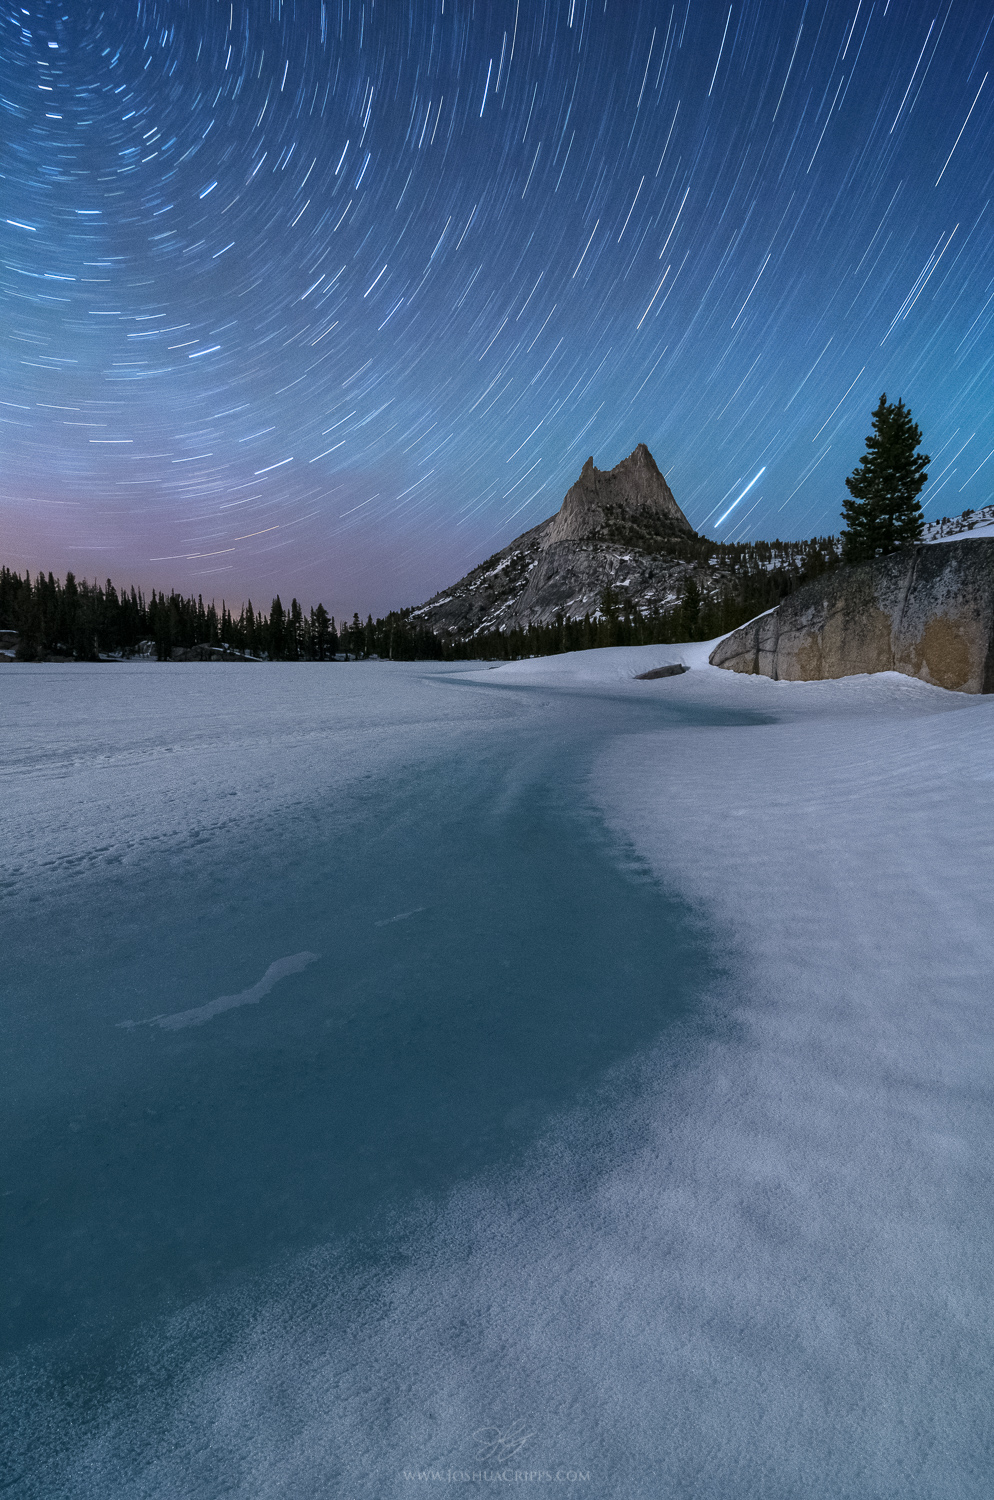 cathedral-peak-yosemite-snow-star-trails